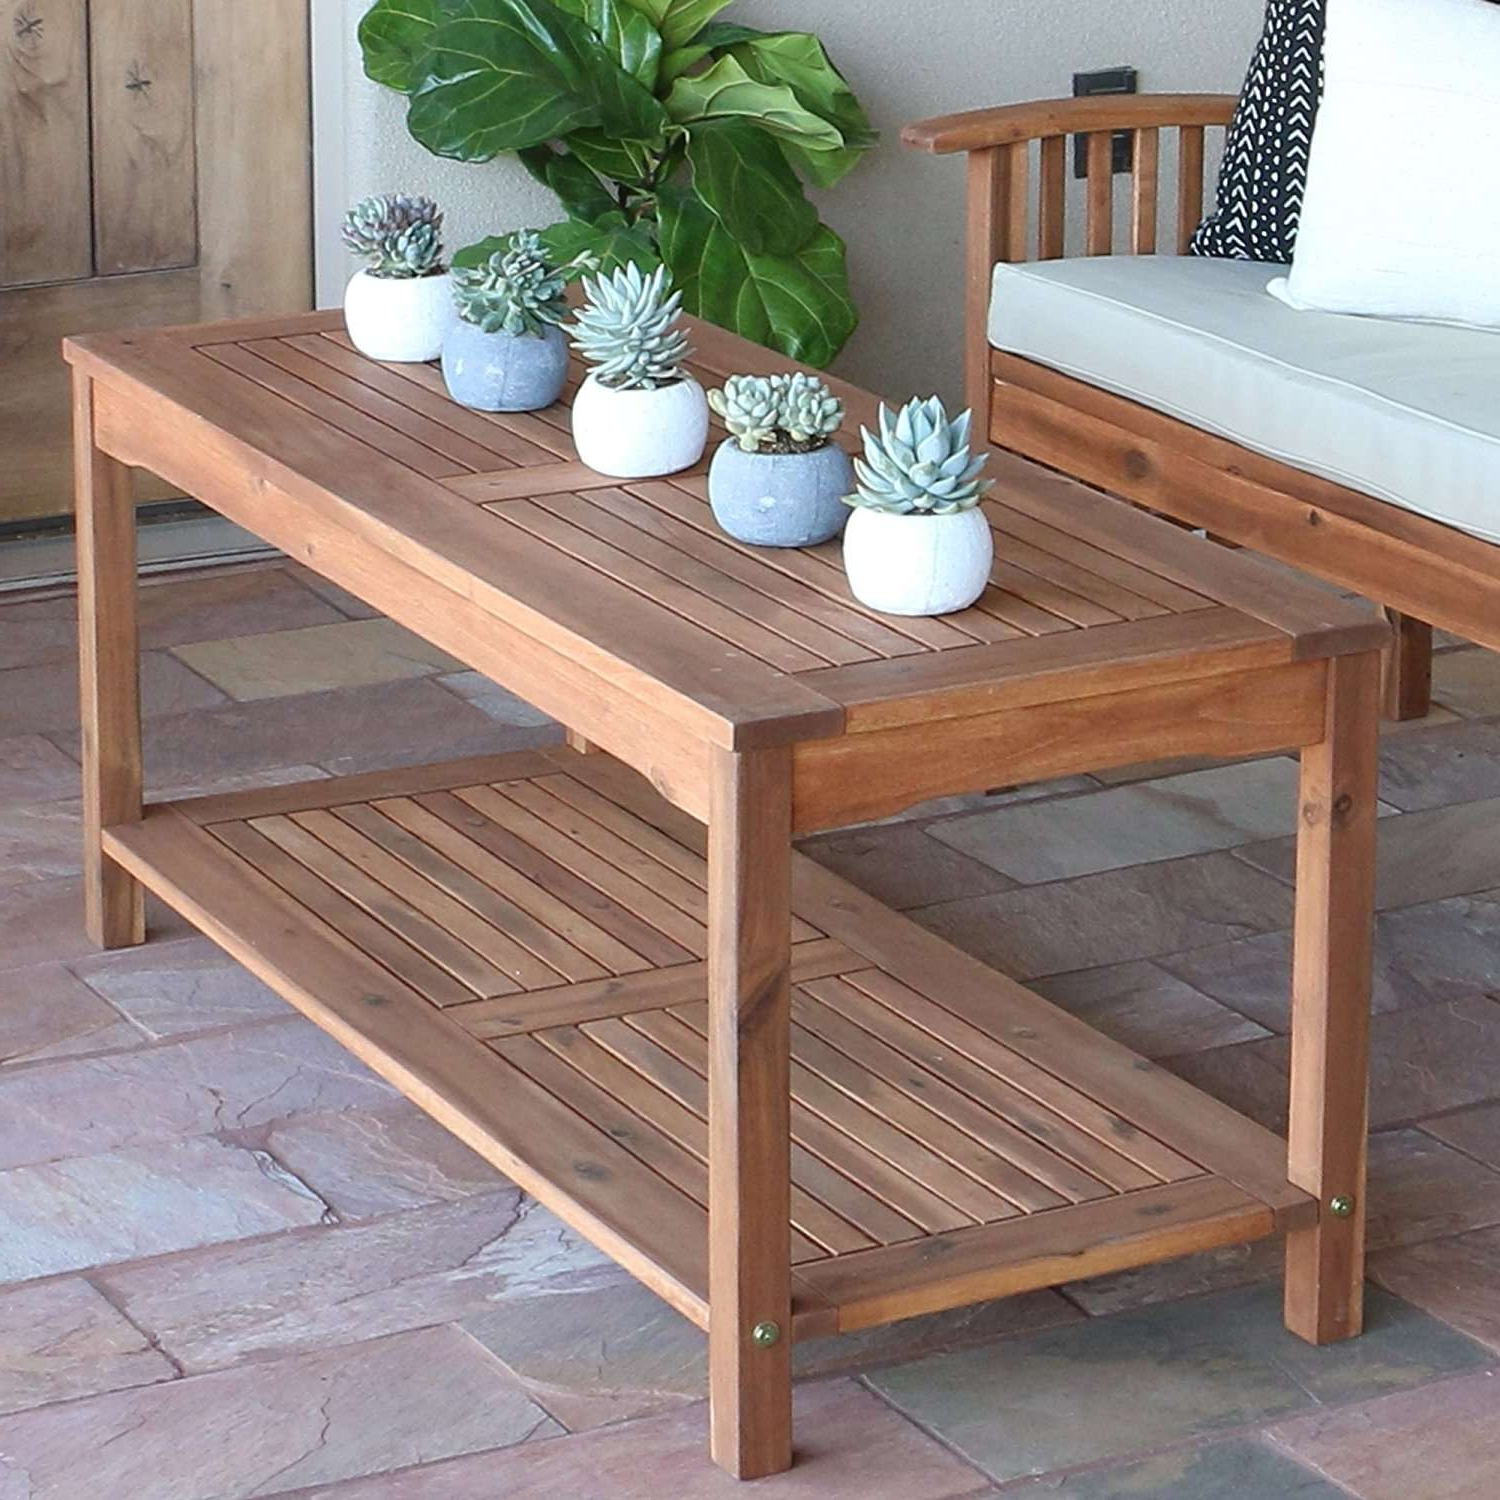 9 Crate And Barrel Concrete Coffee Table Gallery | Coffee Tables Ideas For Parsons Concrete Top & Stainless Steel Base 48X16 Console Tables (View 1 of 20)